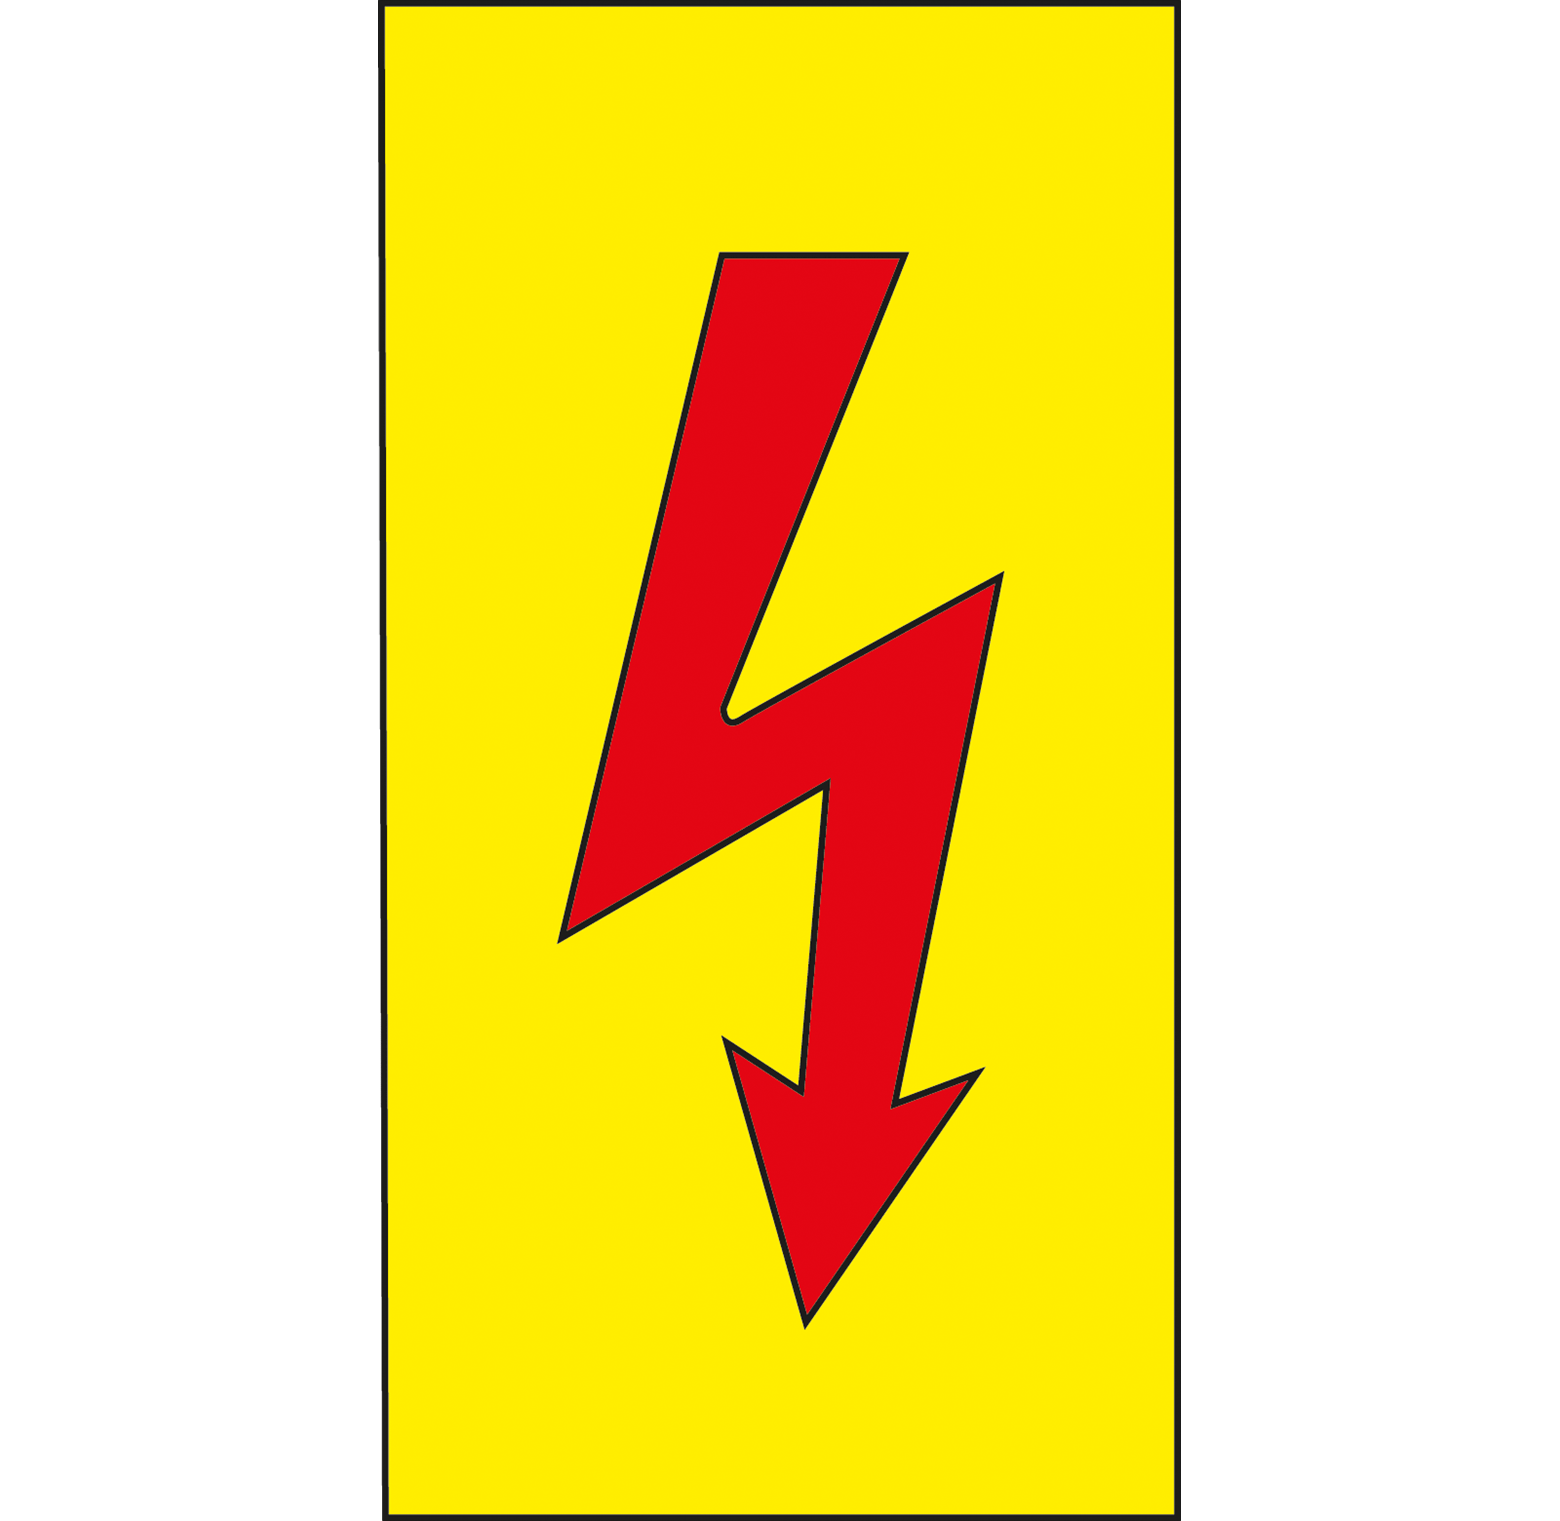 W 74401: Warning sign: red lightning flash at reichelt elektronik